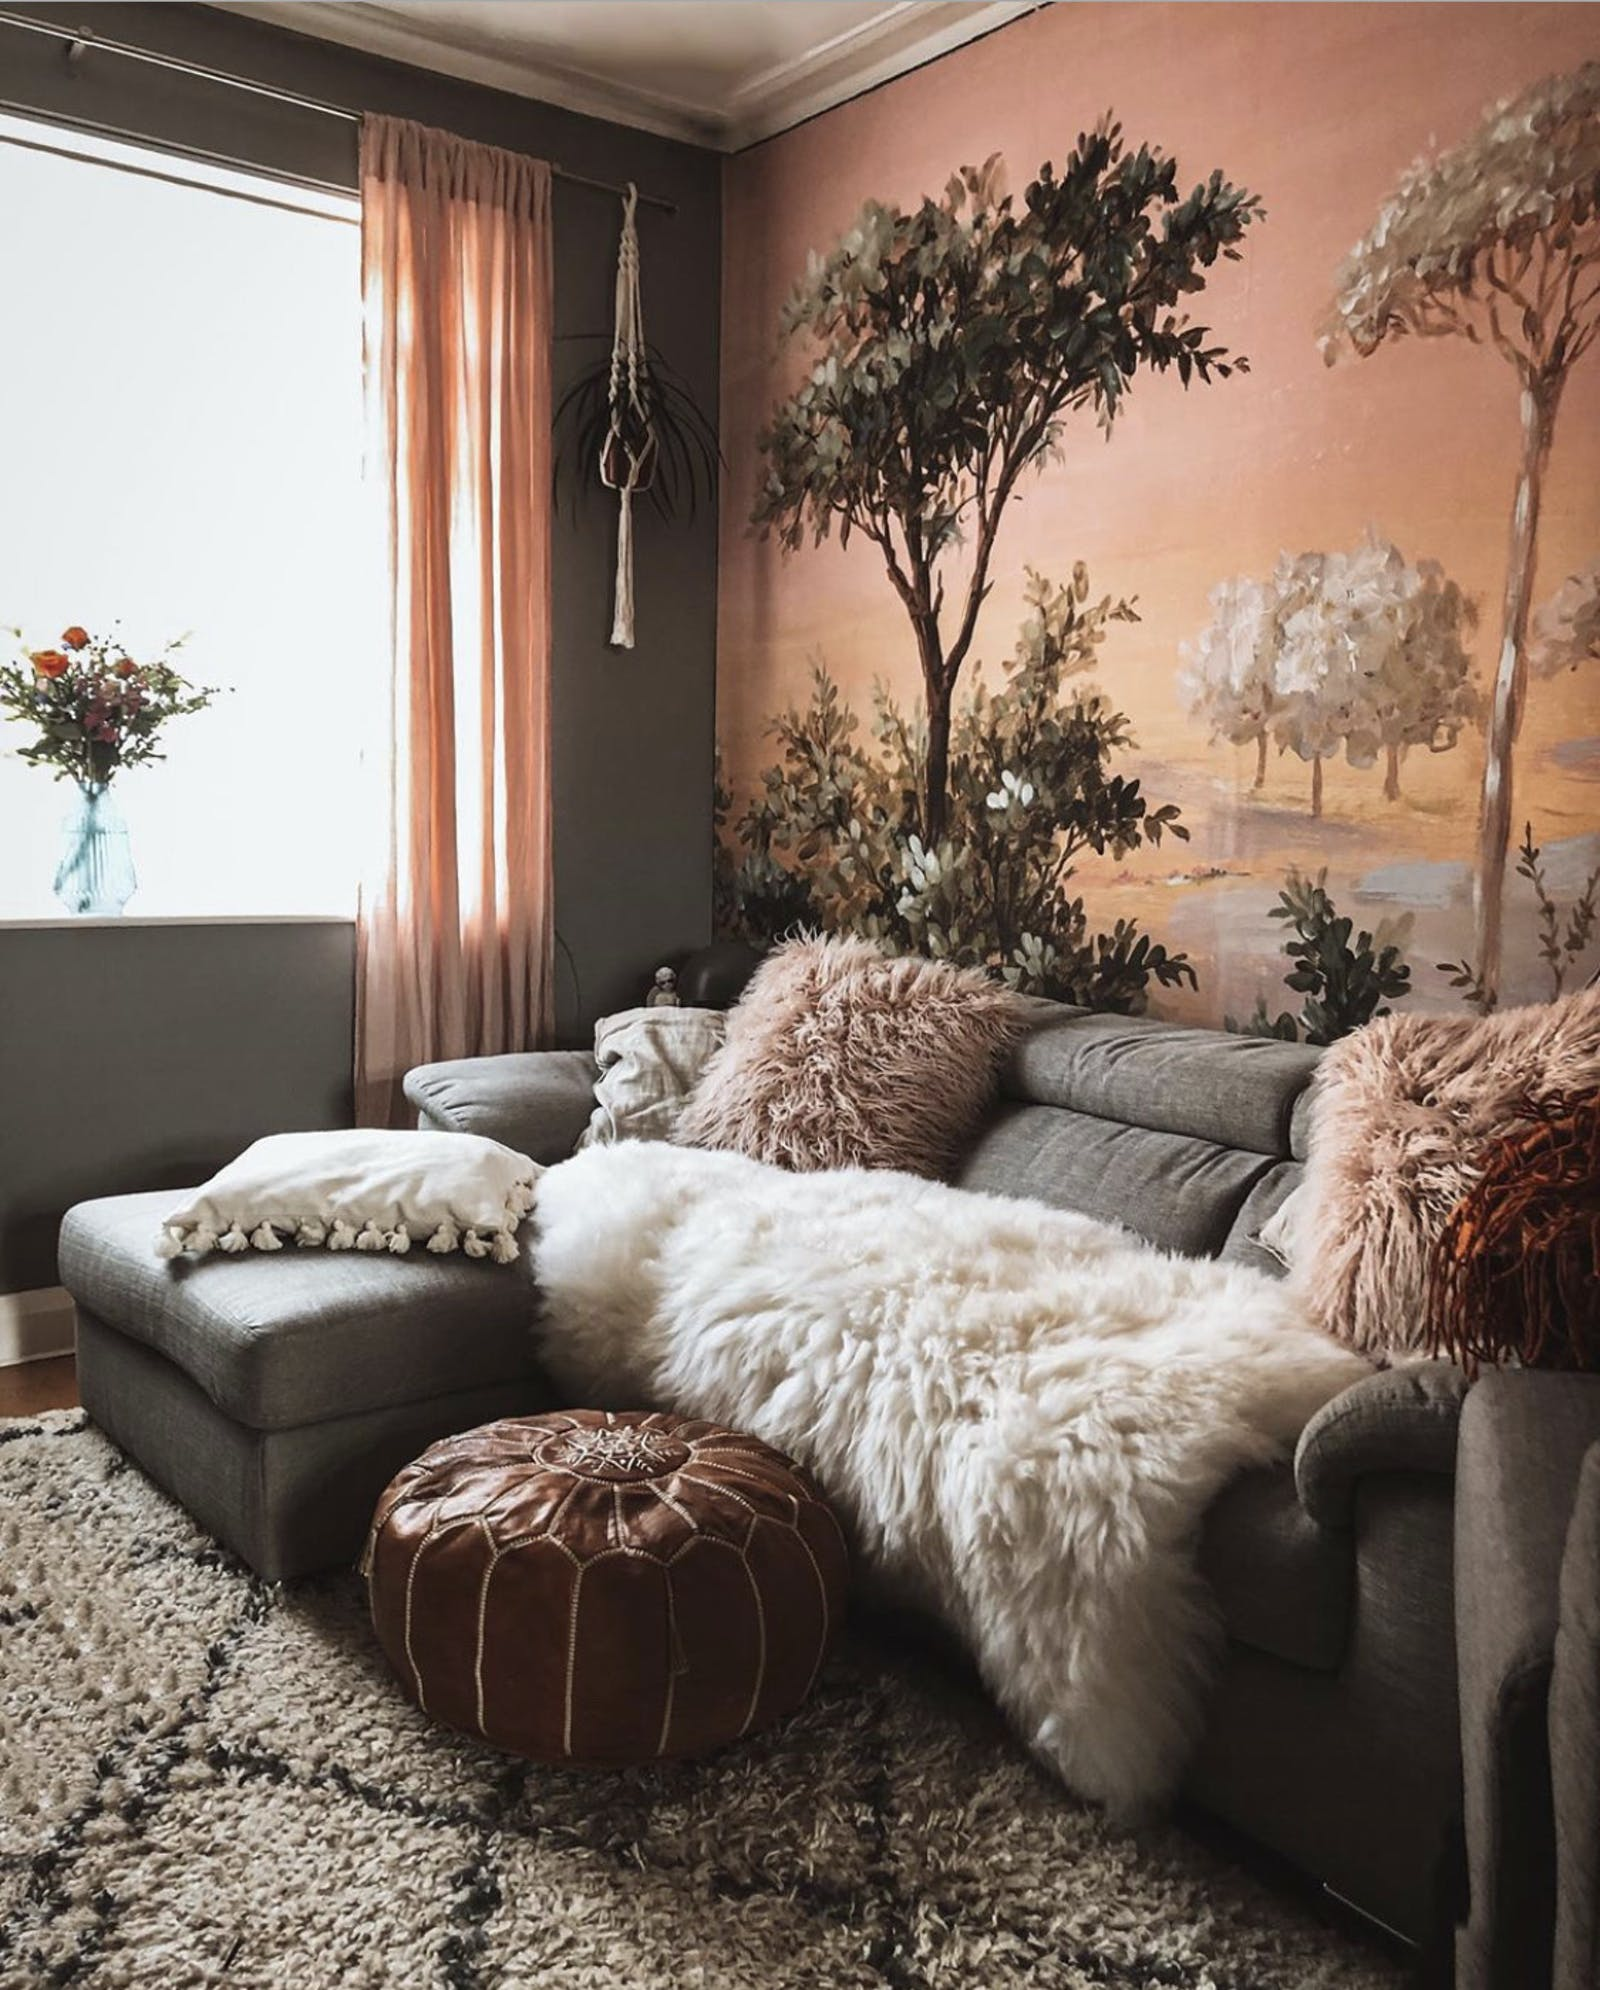 Living room with an Asian-inspired wallpaper and a lot of textures